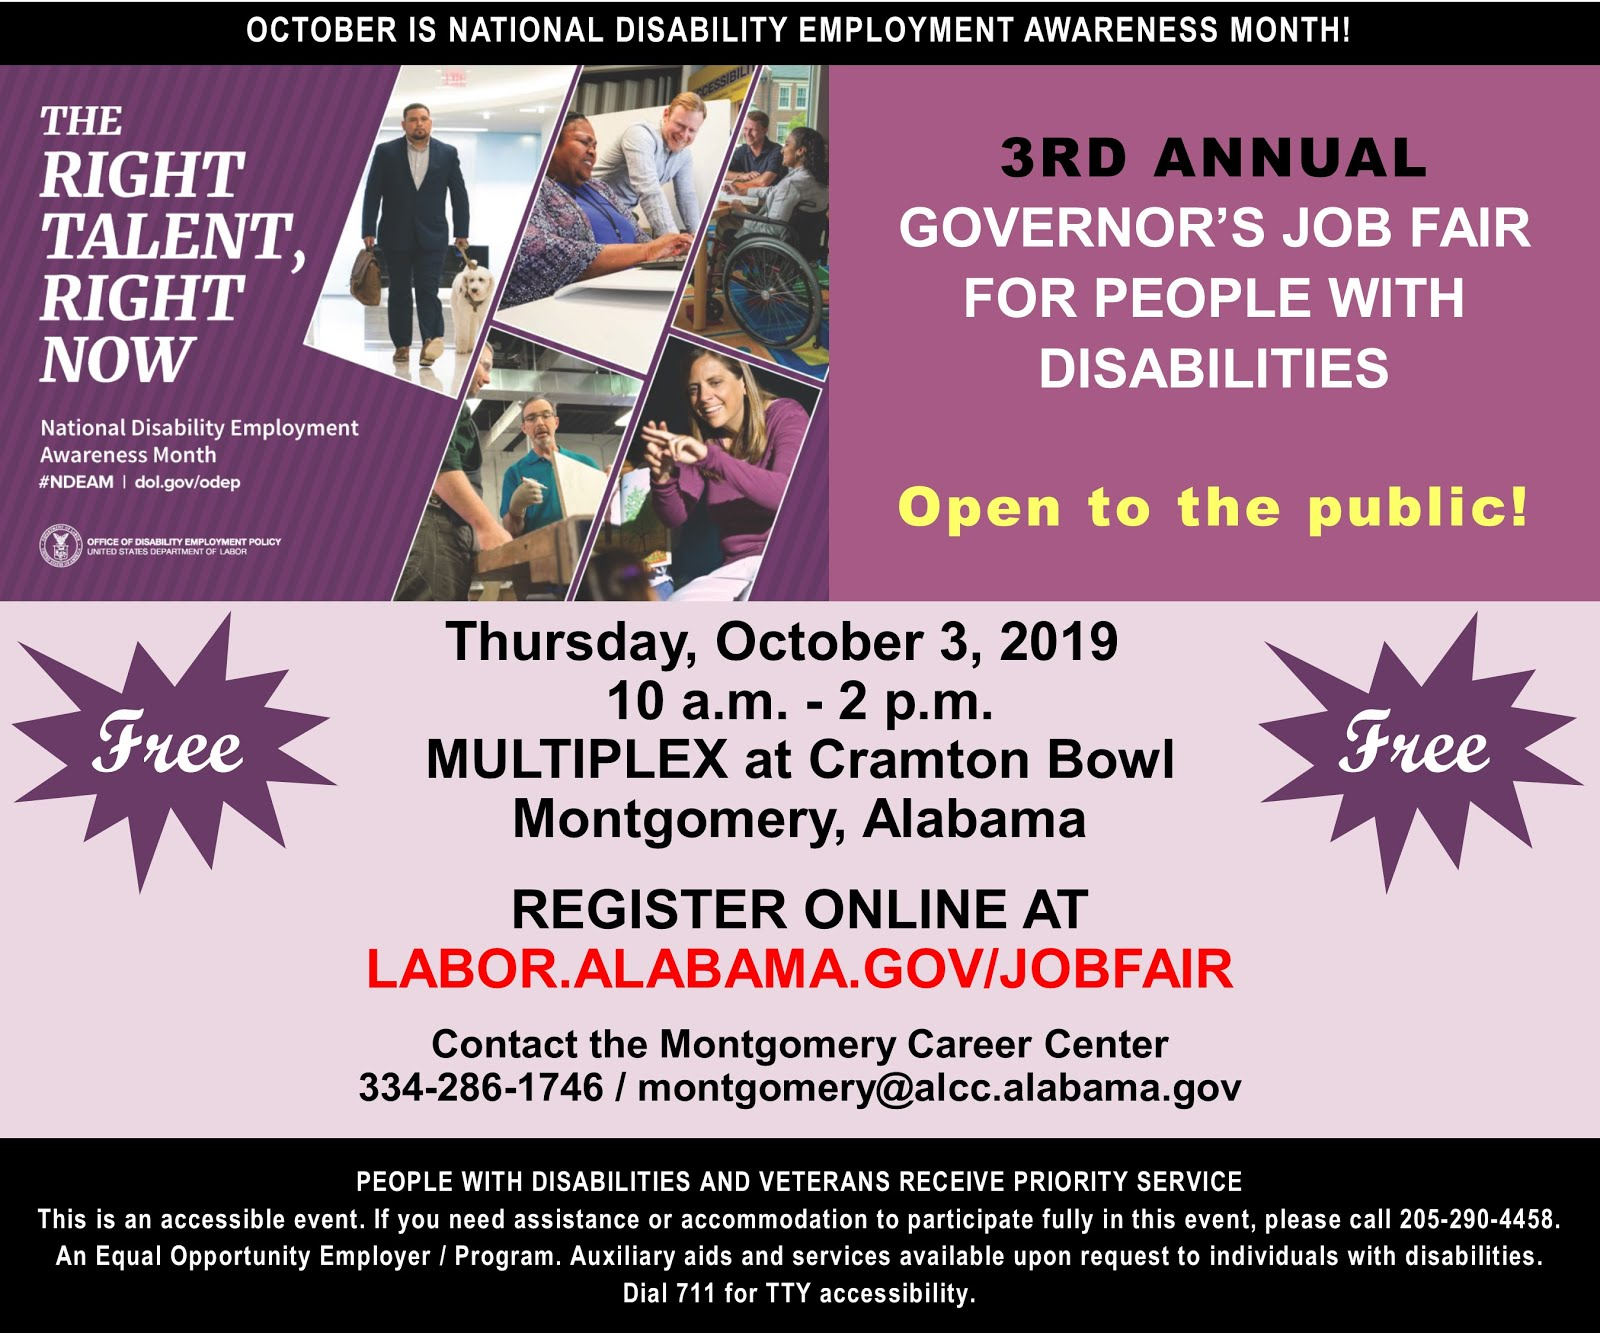 3RD ANNUAL GOVERNOR'S JOB FAIR FOR PEOPLE WITH DISABILITIES